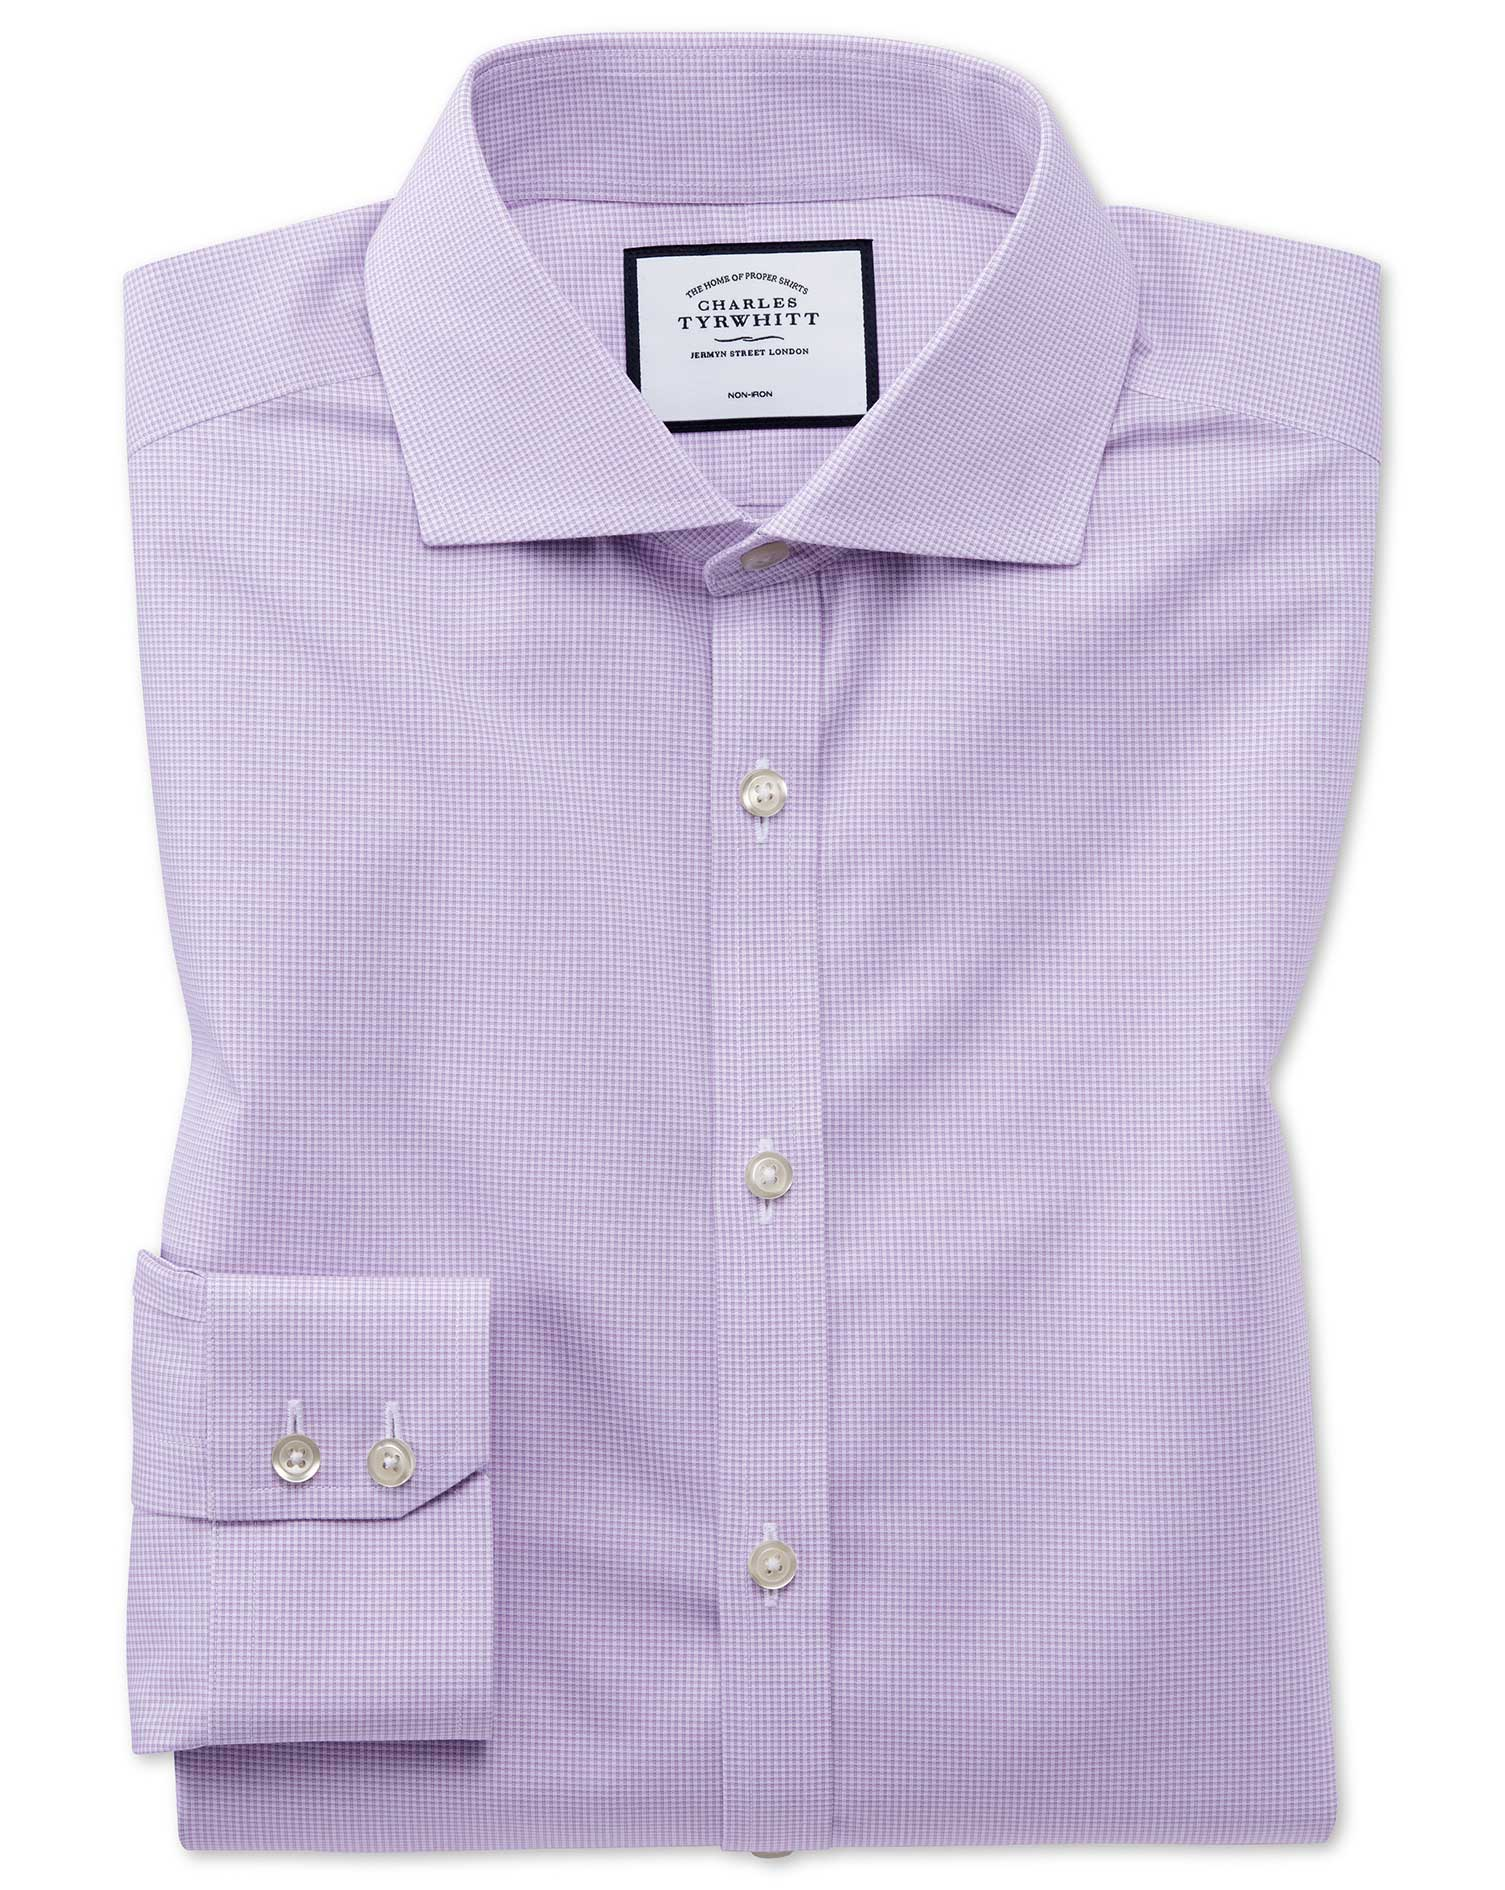 Extra Slim Fit Non-Iron 4-Way Stretch Lilac Check Cotton Formal Shirt Single Cuff Size 16.5/38 by Ch